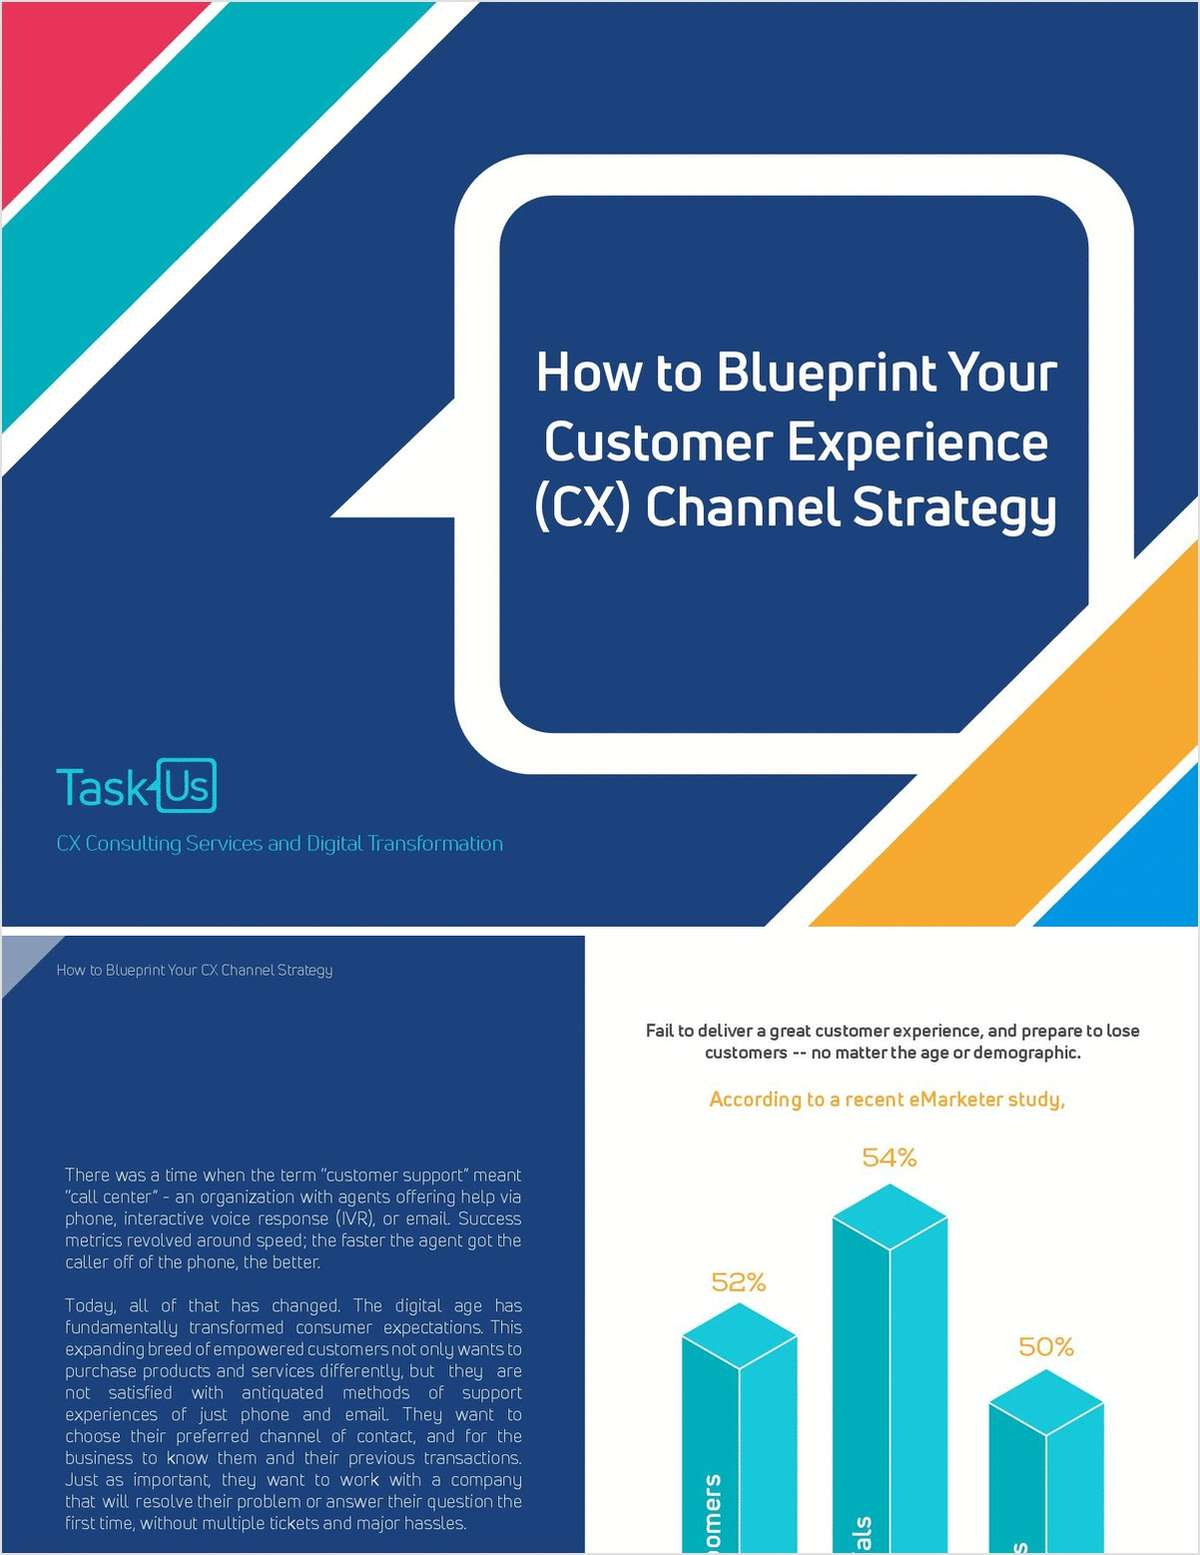 How to Blueprint Your CX Channel Strategy